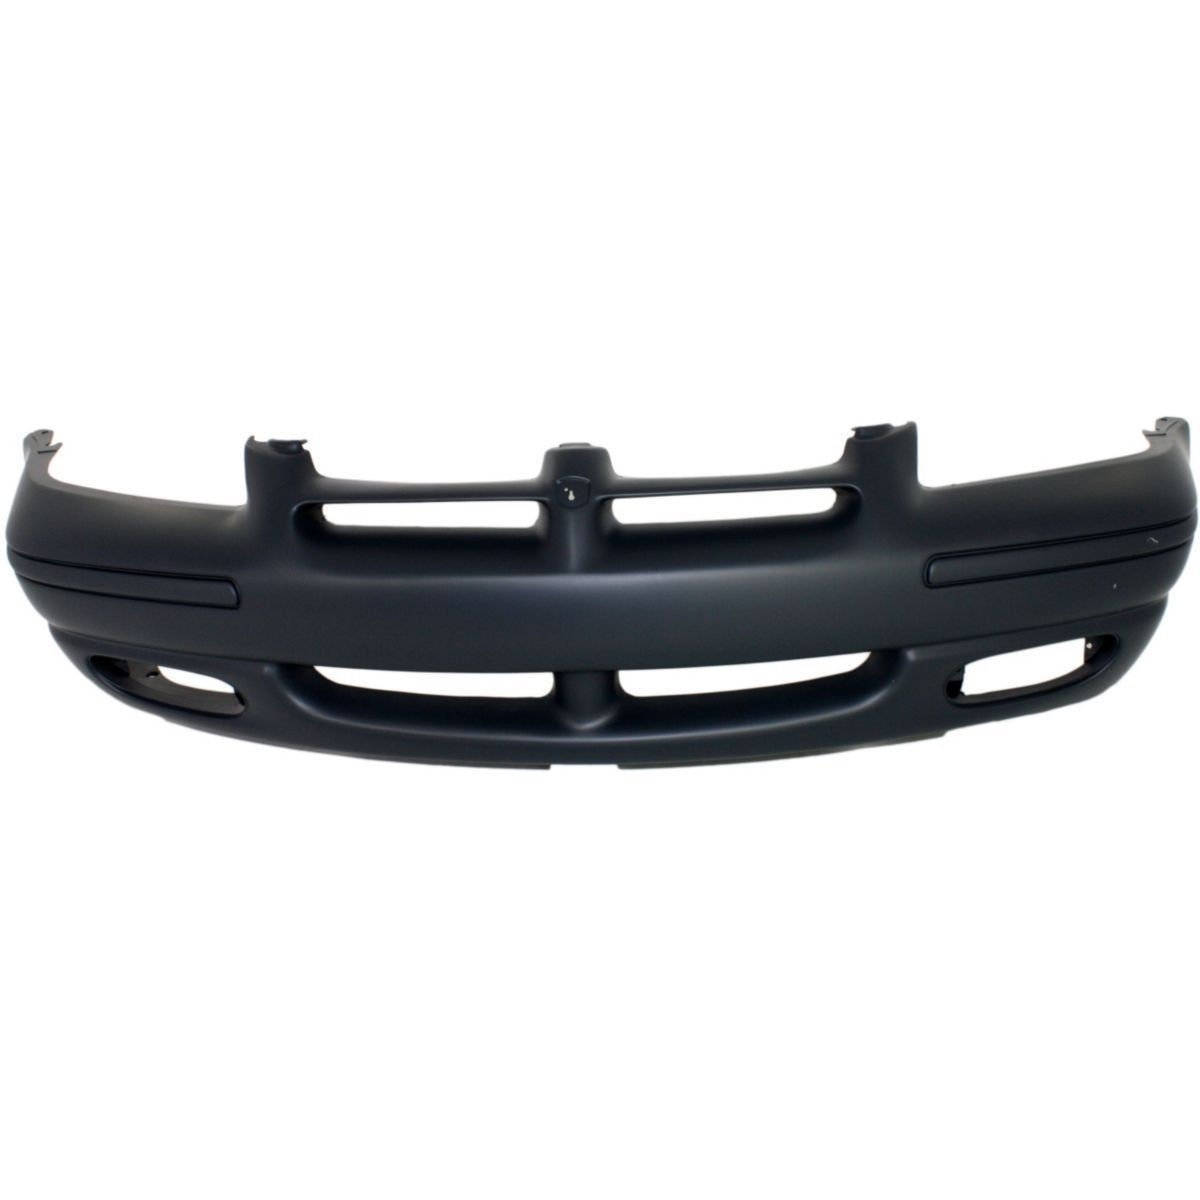 NEW BUMPER COVER FRONT FITS 2001-2003 DODGE STRATUS 4805251AB